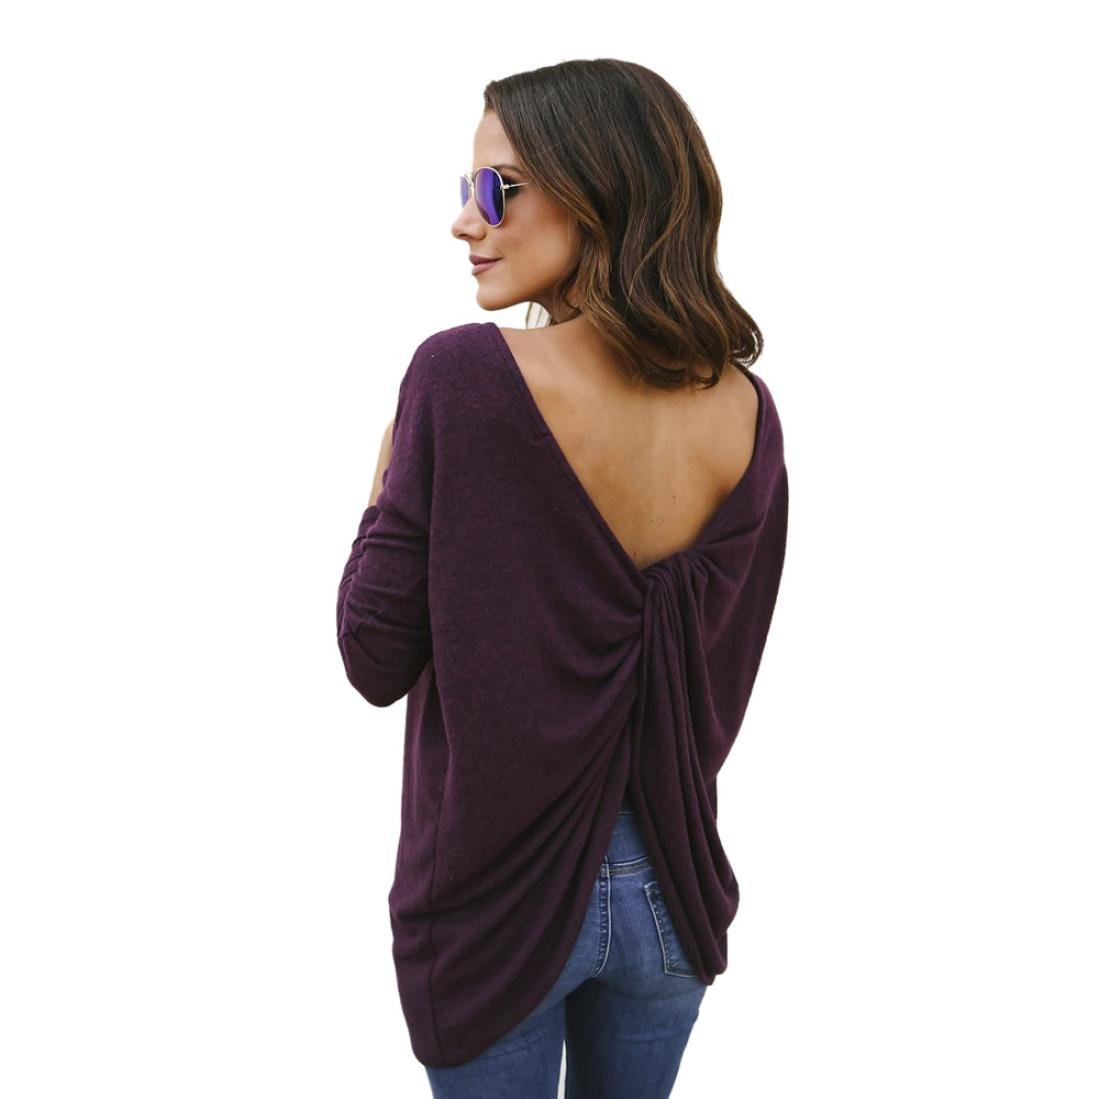 low-cost Women Blouse ,BeautyVan New Design Women Backless Long Sleeve Charming Sweatshirt Pullover Tops Blouse